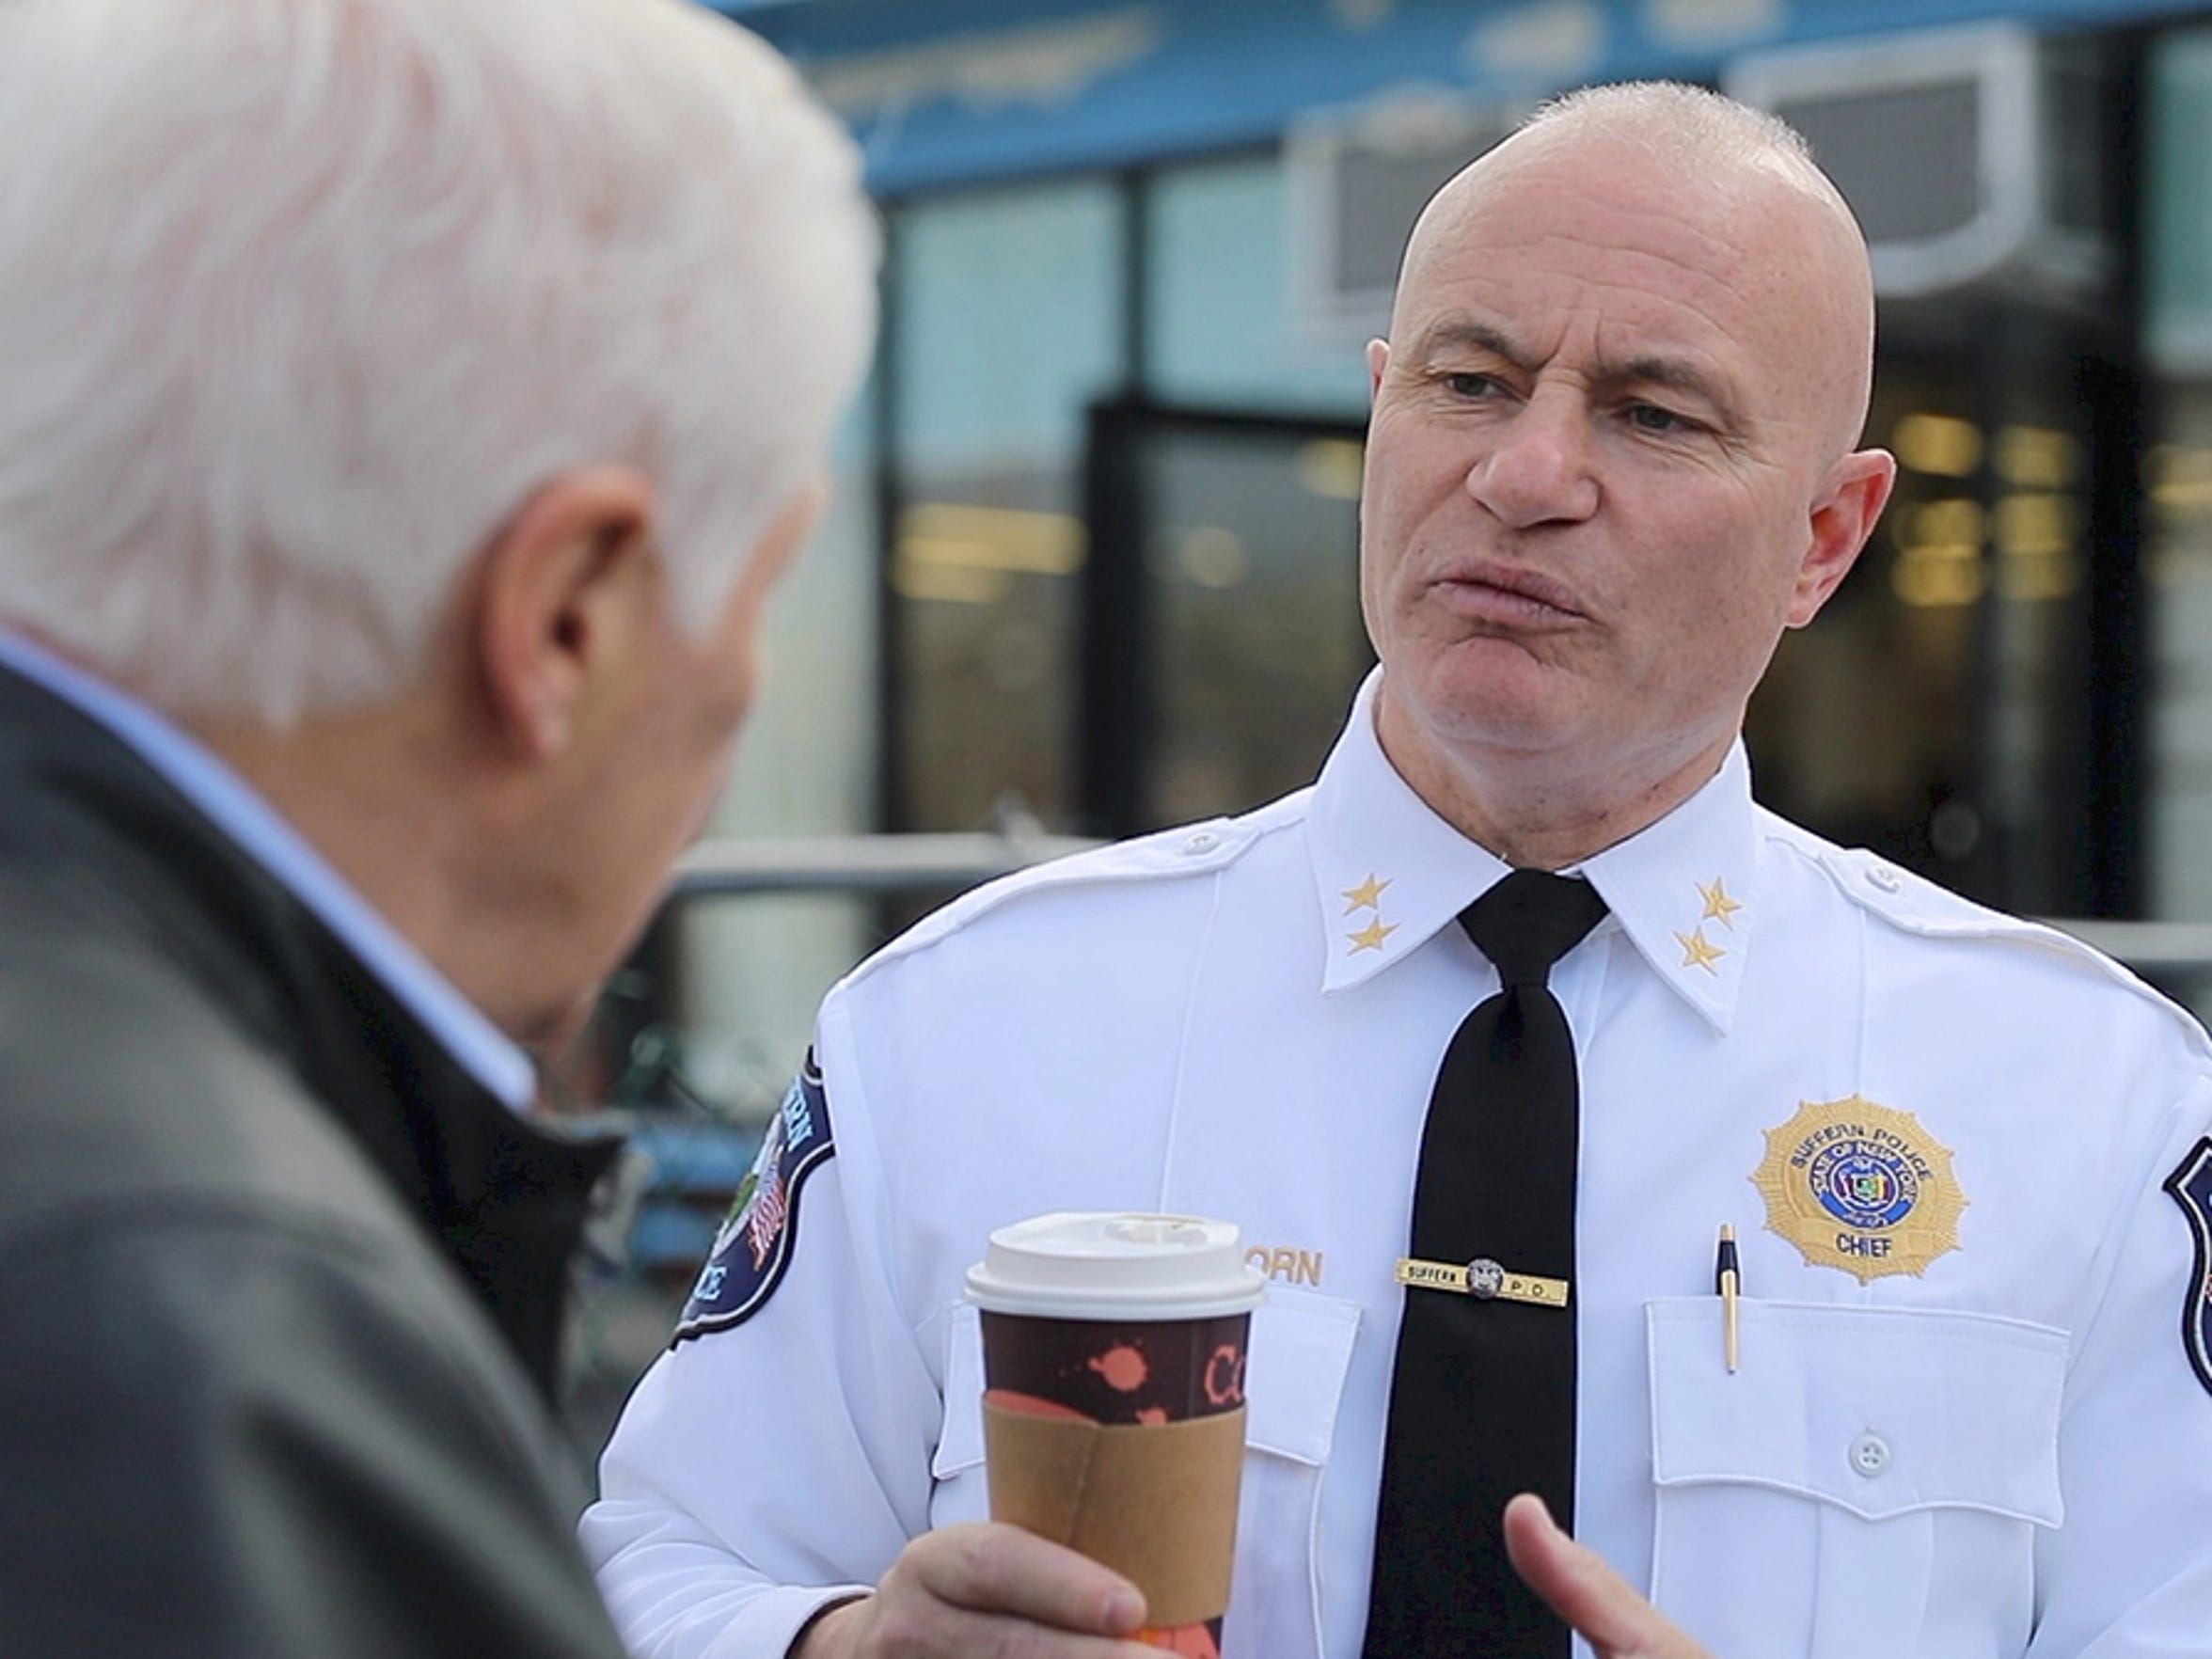 Suffern Police Chief Clarke Osborn, right, talks with